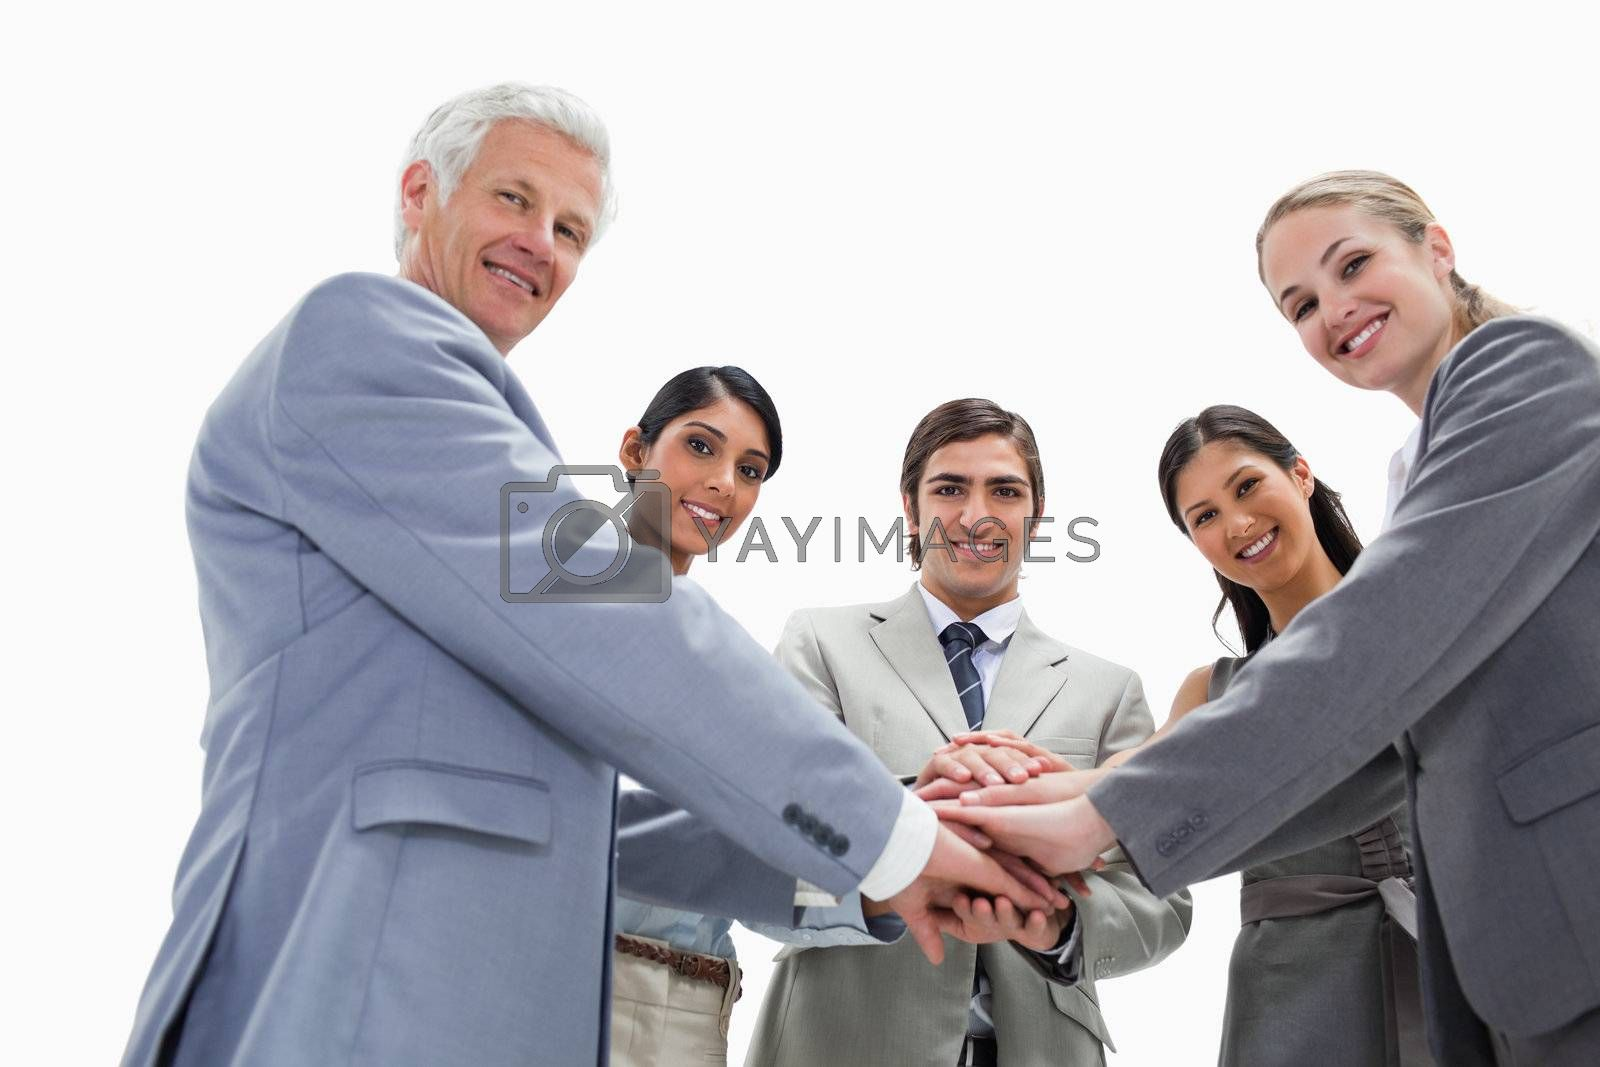 Happy team putting their hands on each others against white background